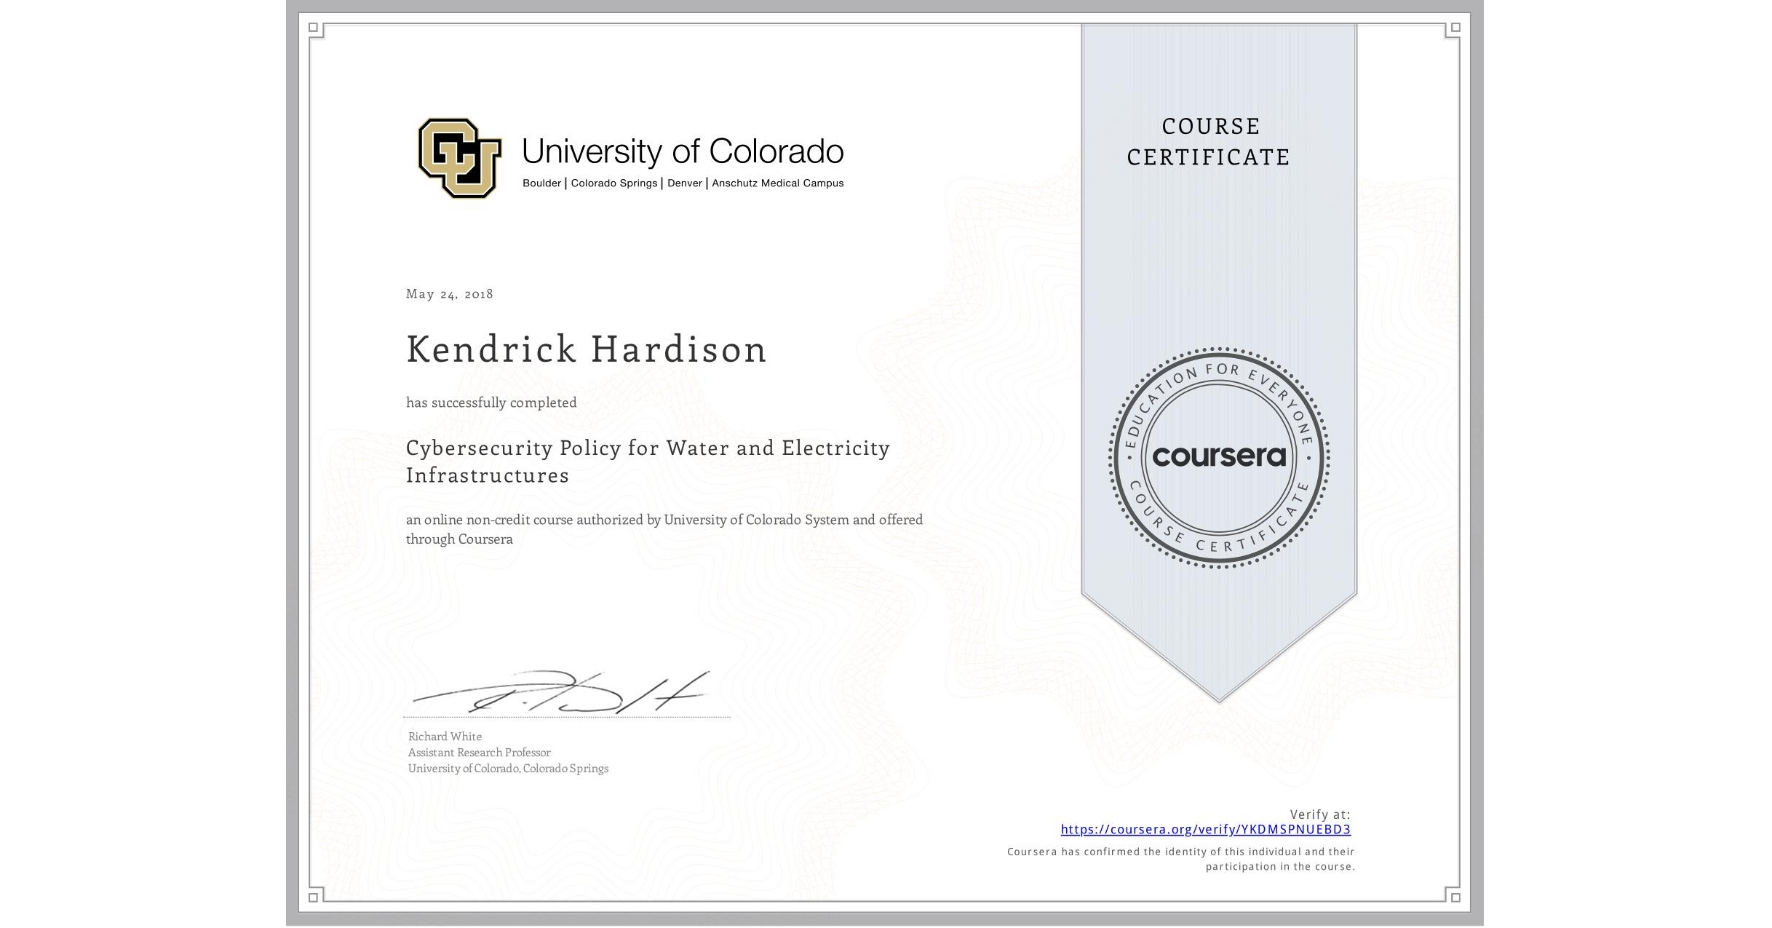 View certificate for Kendrick Hardison, Cybersecurity Policy for Water and Electricity Infrastructures, an online non-credit course authorized by University of Colorado System and offered through Coursera